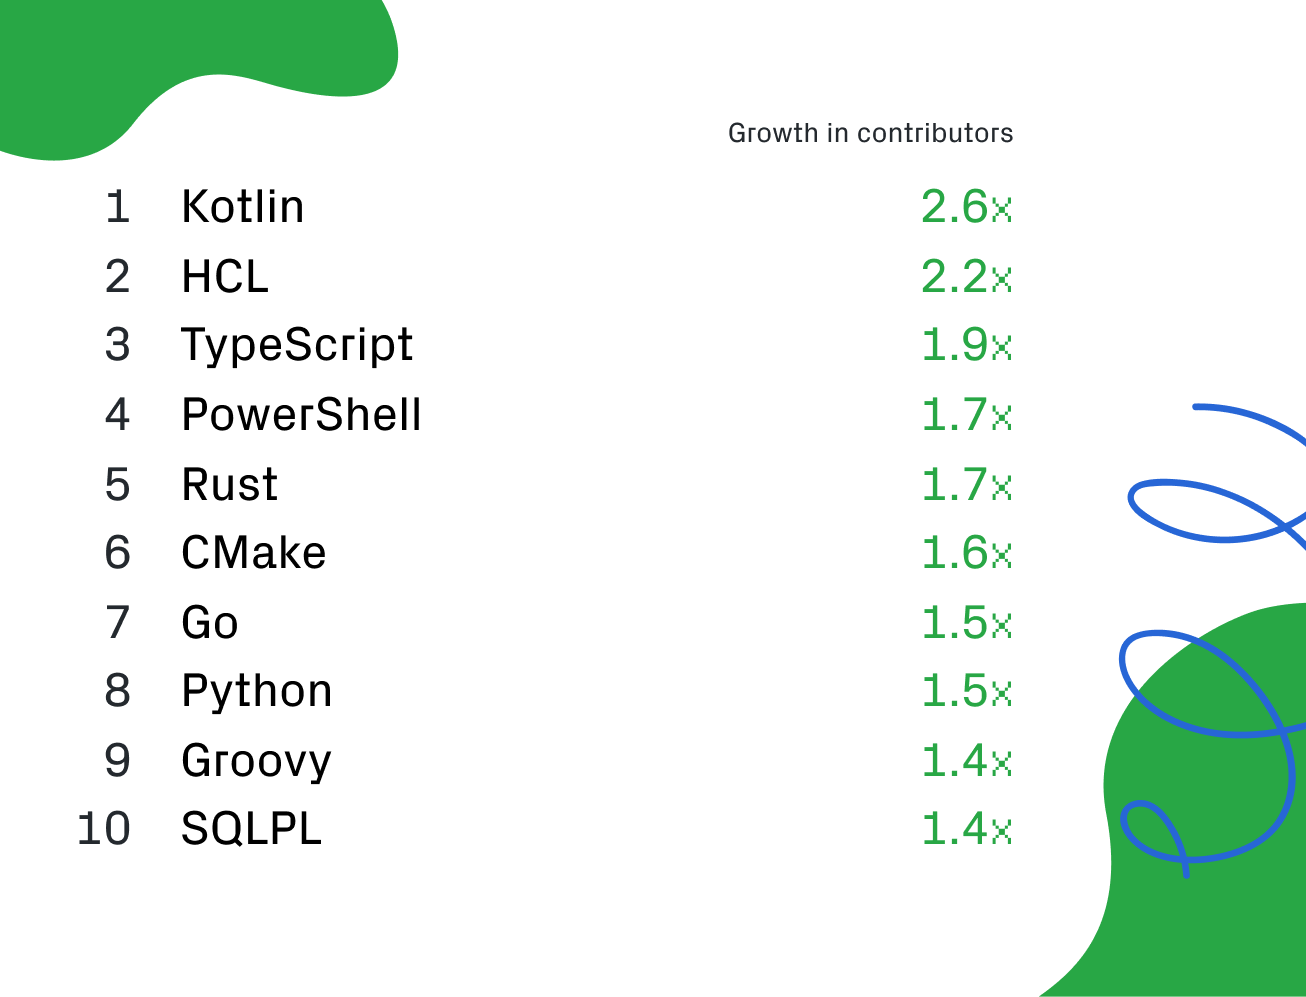 Fastest growing languages by contributor